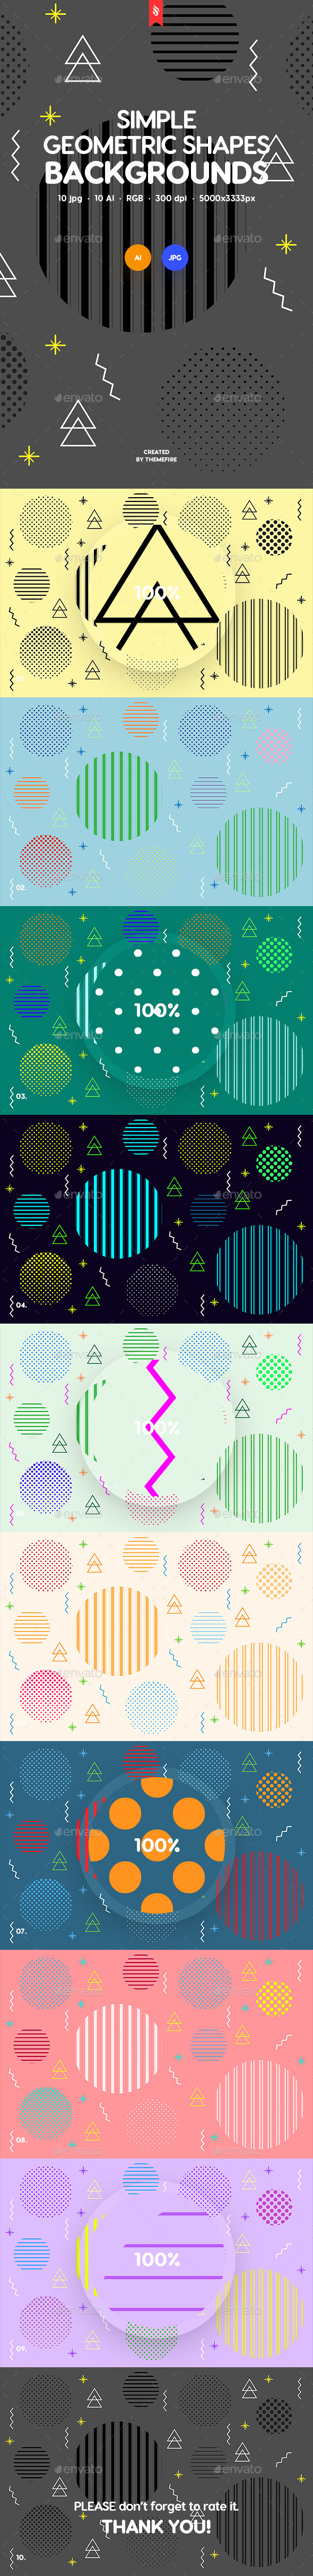 Simple Geo Shapes Backgrounds - Patterns Backgrounds